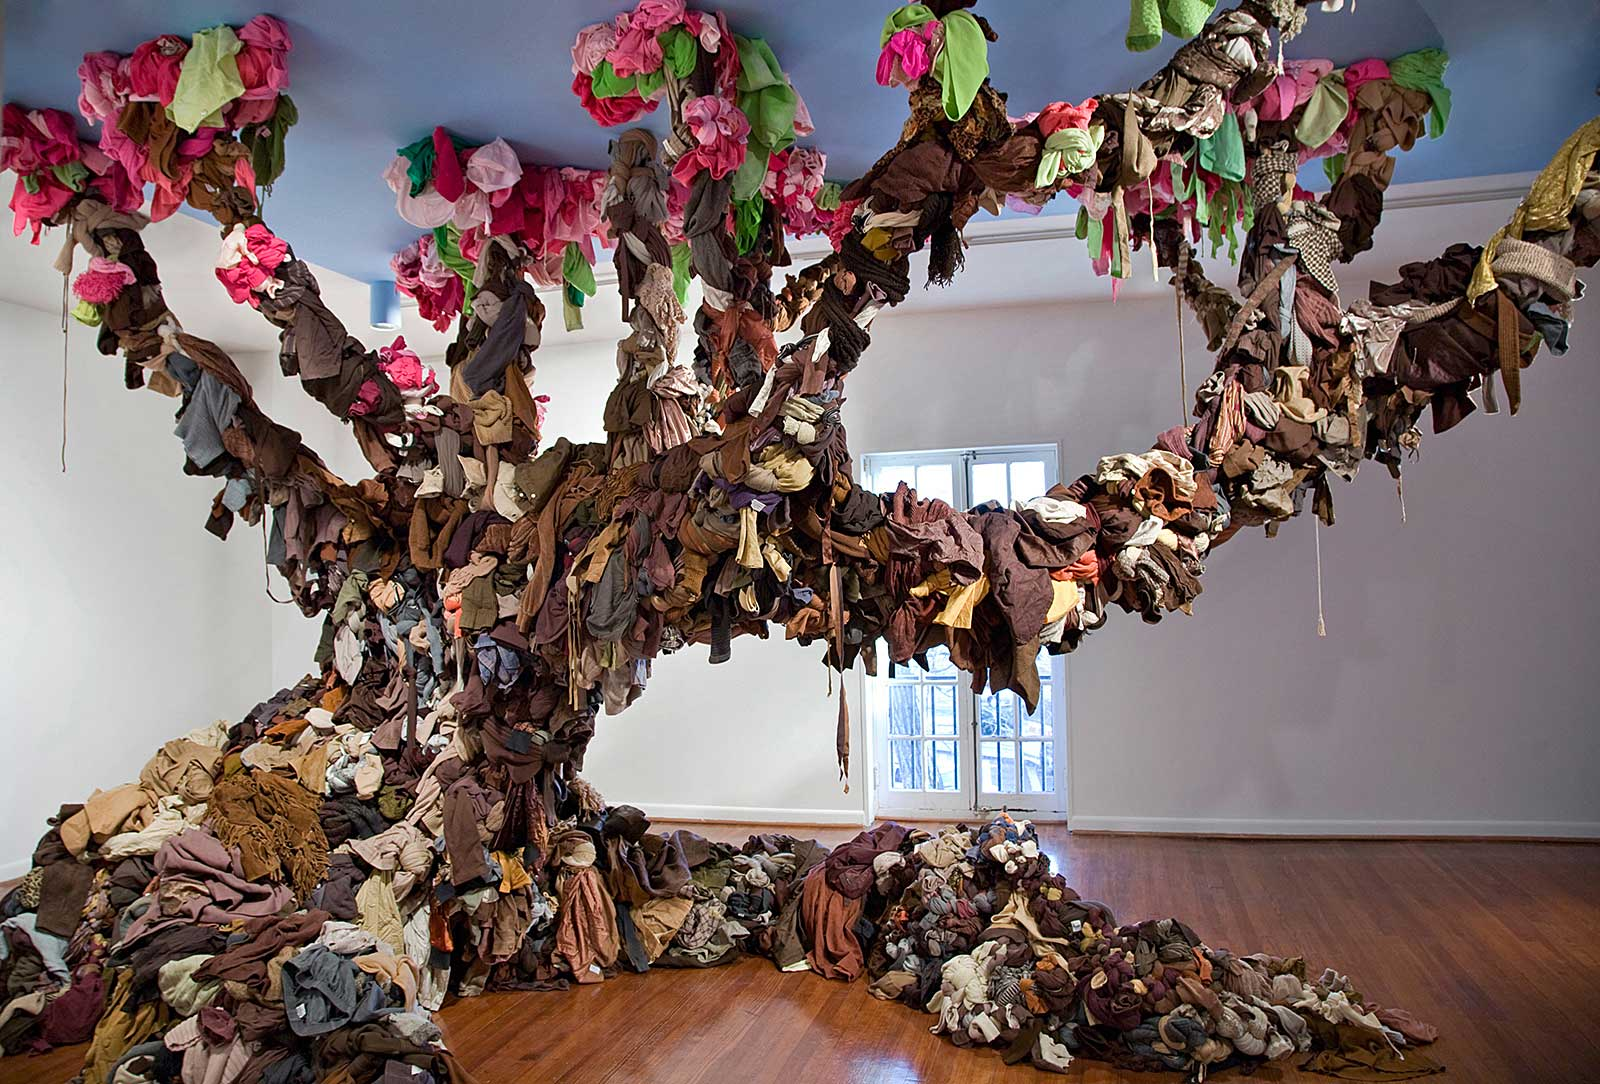 sculpture in form of tree made from discarded textiles